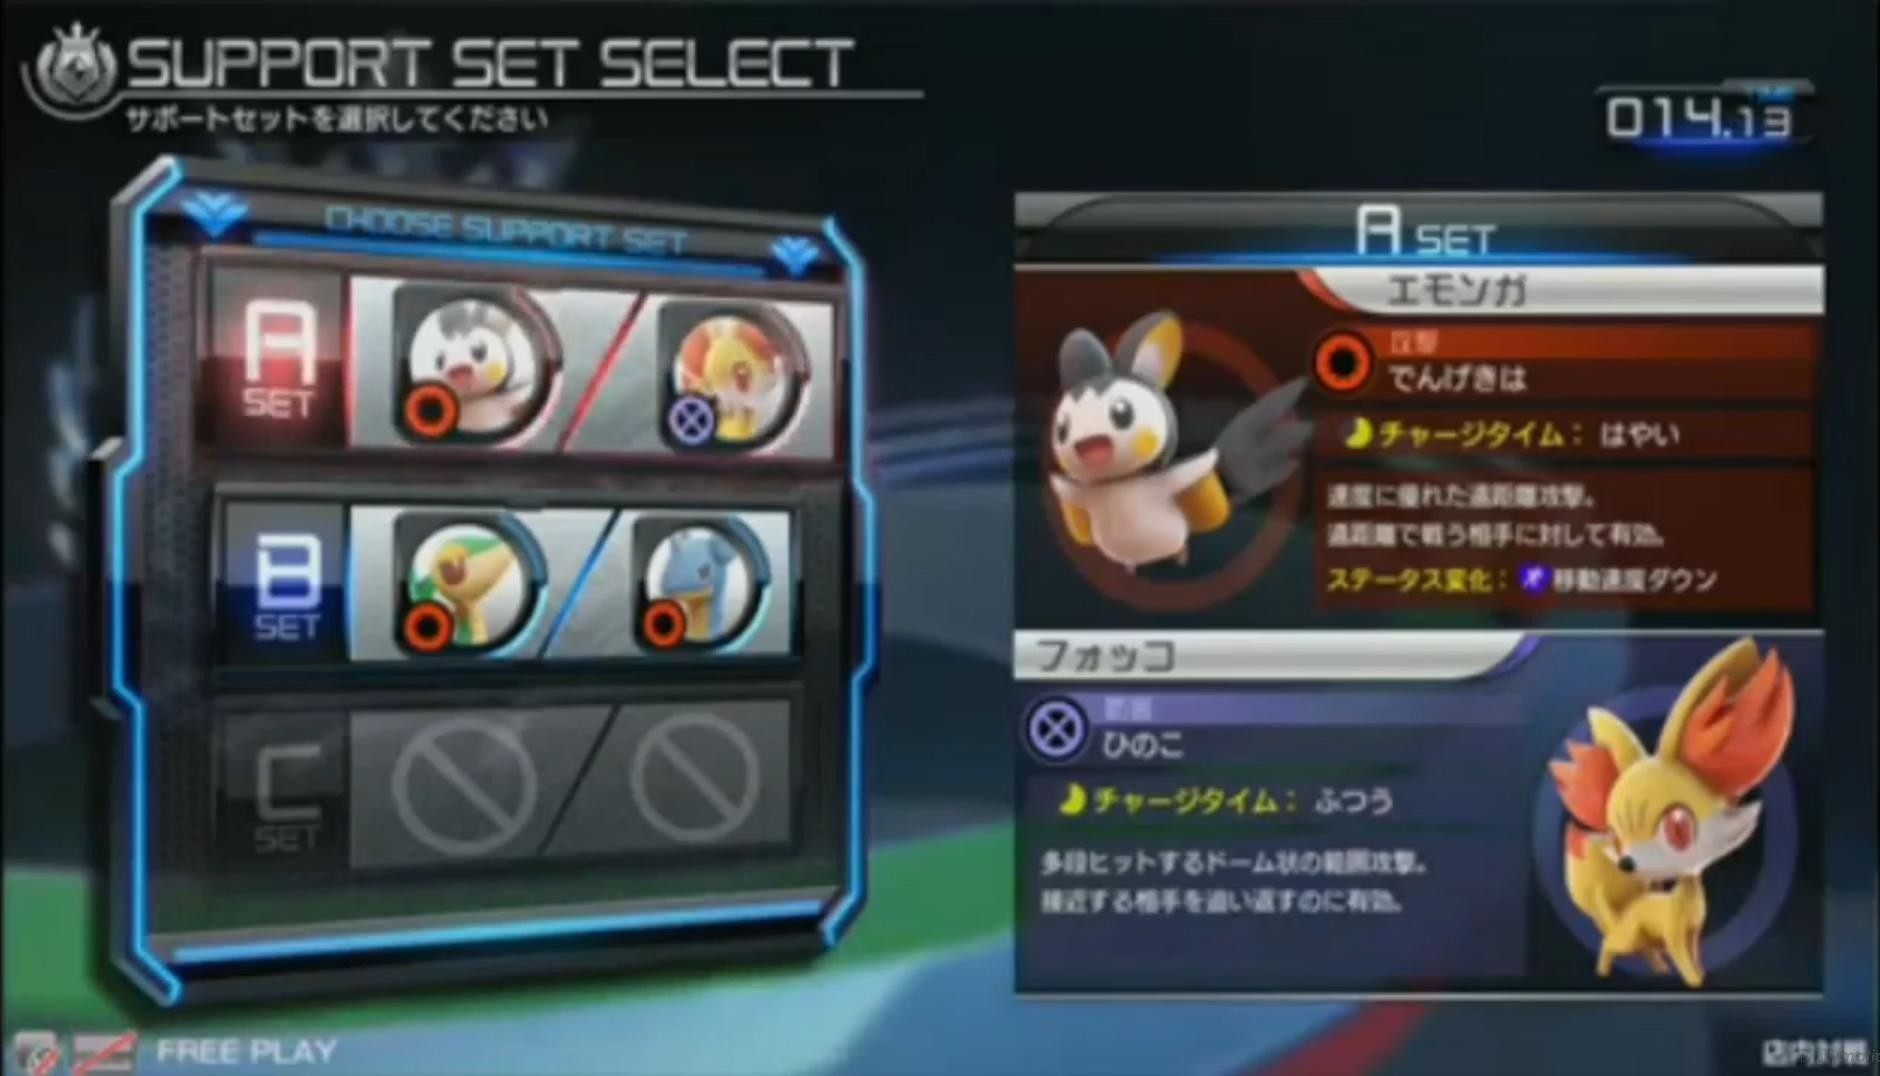 News: Suicune, Pikachu and Gardevoir are playable in Pokken